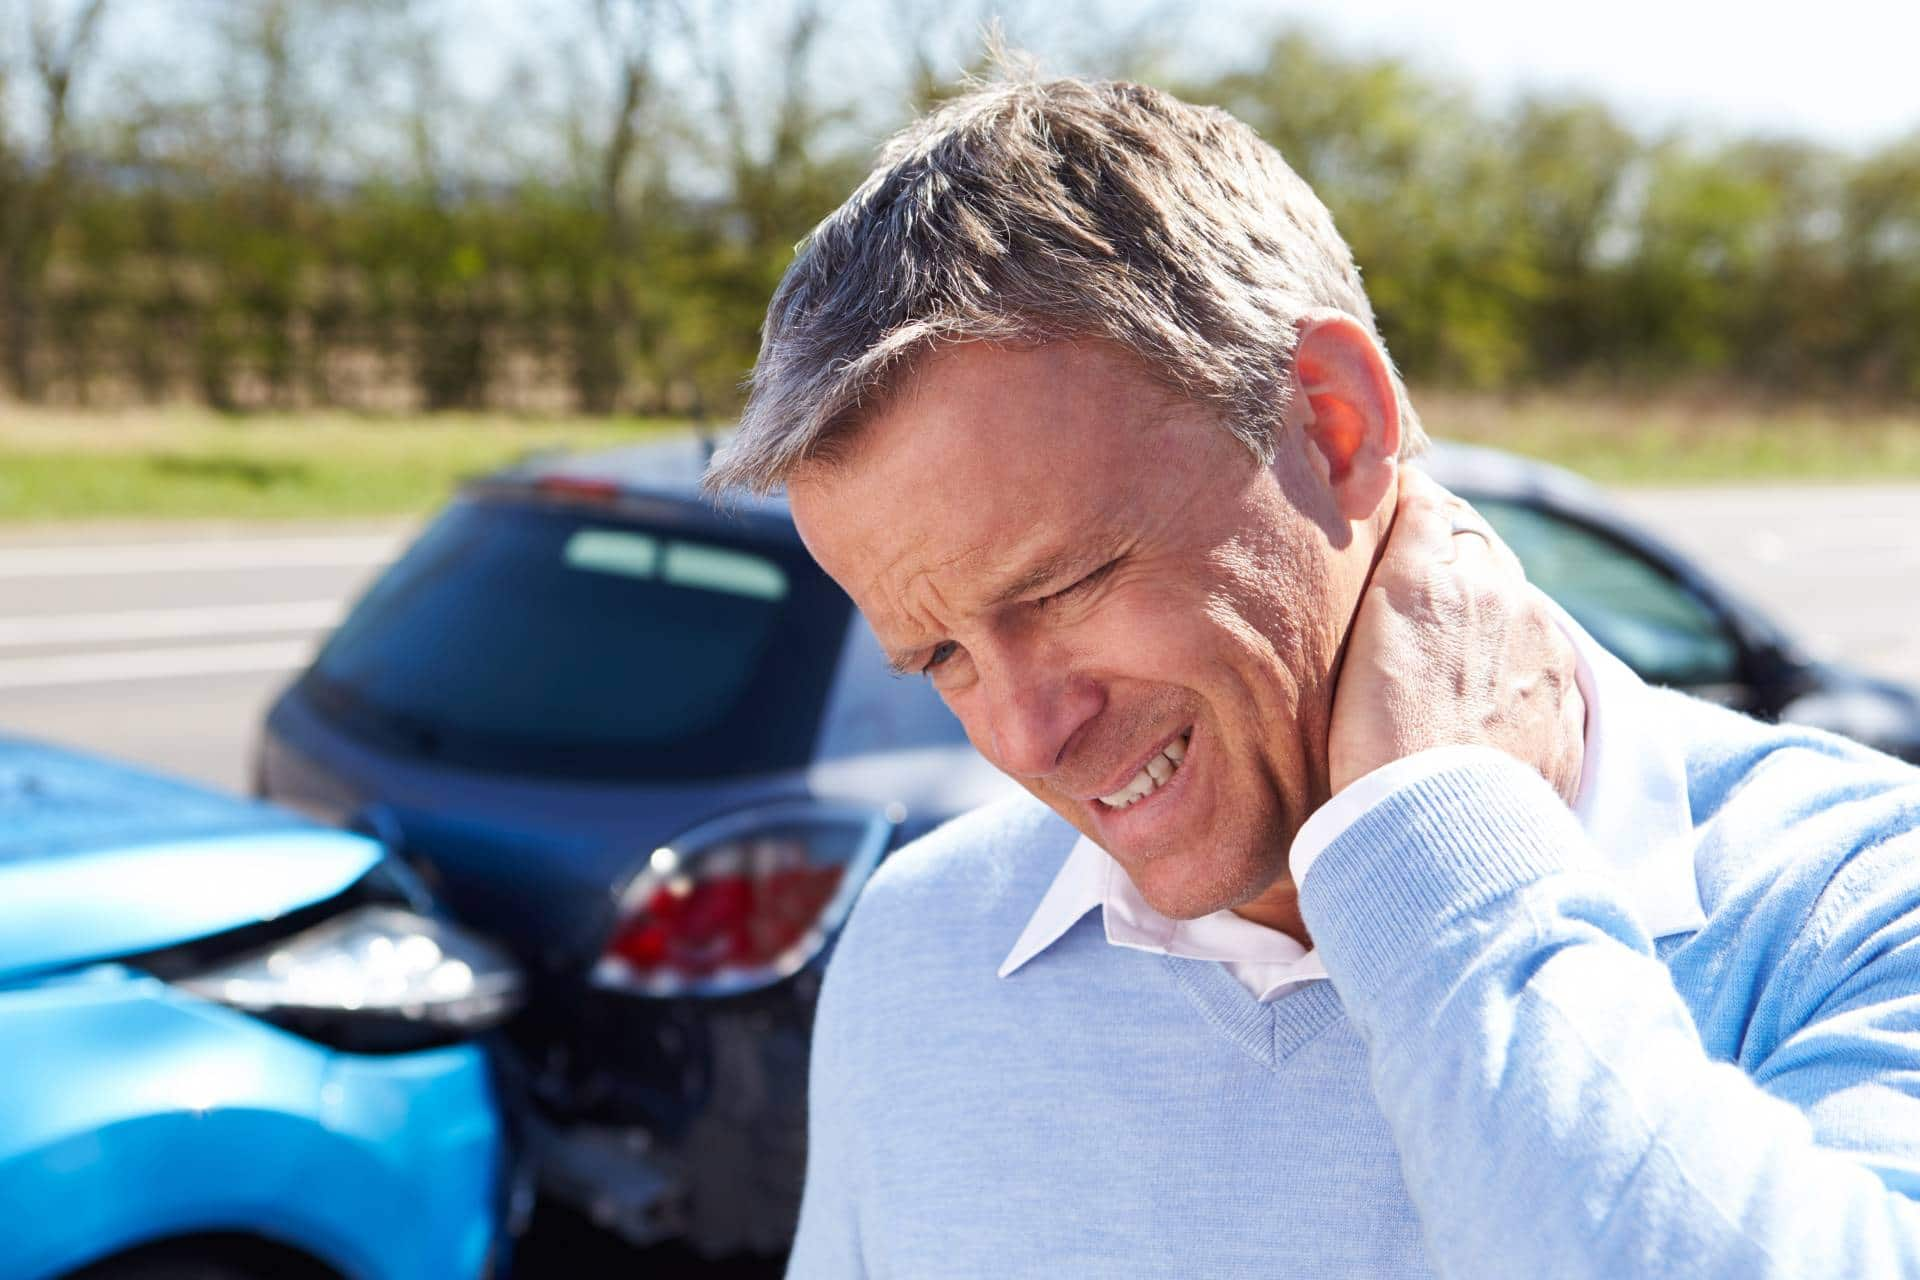 Hurt in a car accident? Schedule a free consultation with our personal injury lawyers at The Angell Law Firm.